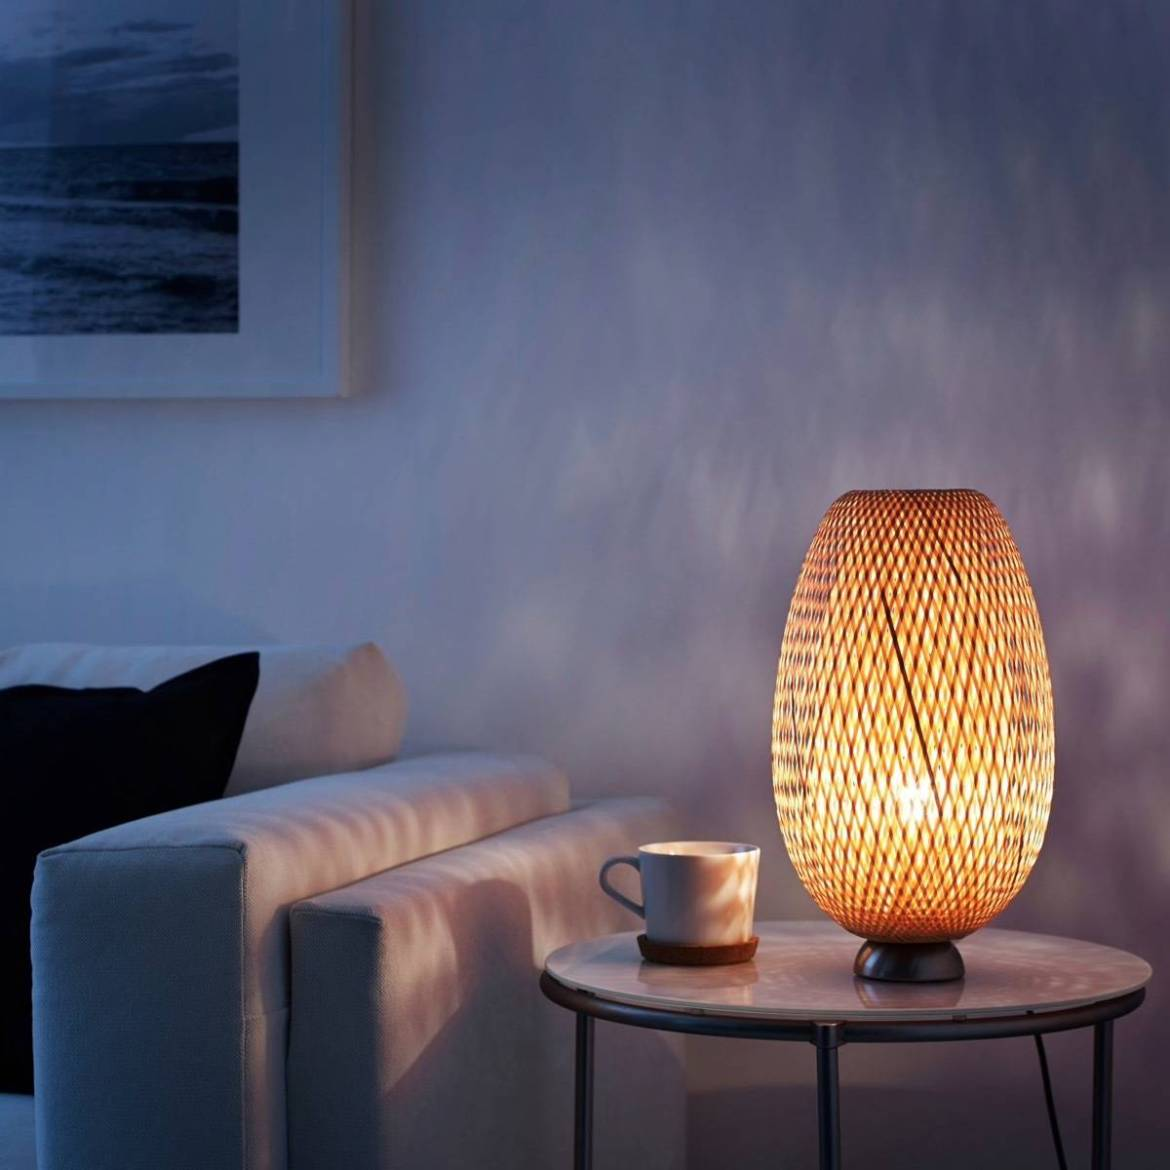 Affordable furniture and home decor pieces under $100 - IKEA table lamp